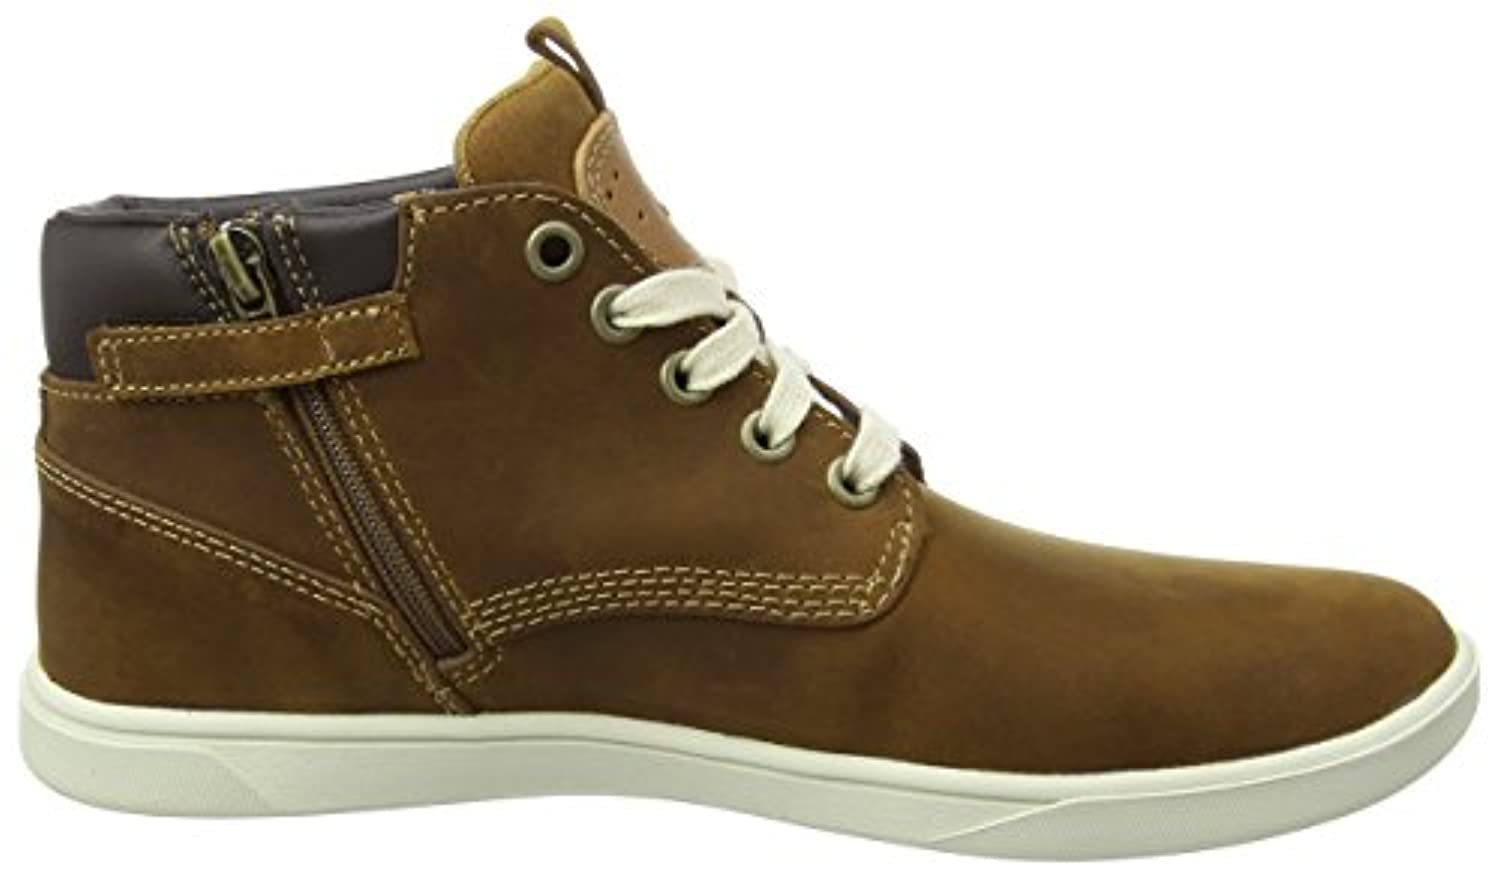 Timberland Groveton_Groveton Leather Chukka, Unisex Kids' Low-Top Sneakers, Brown (Brown), 1 UK (33 EU)